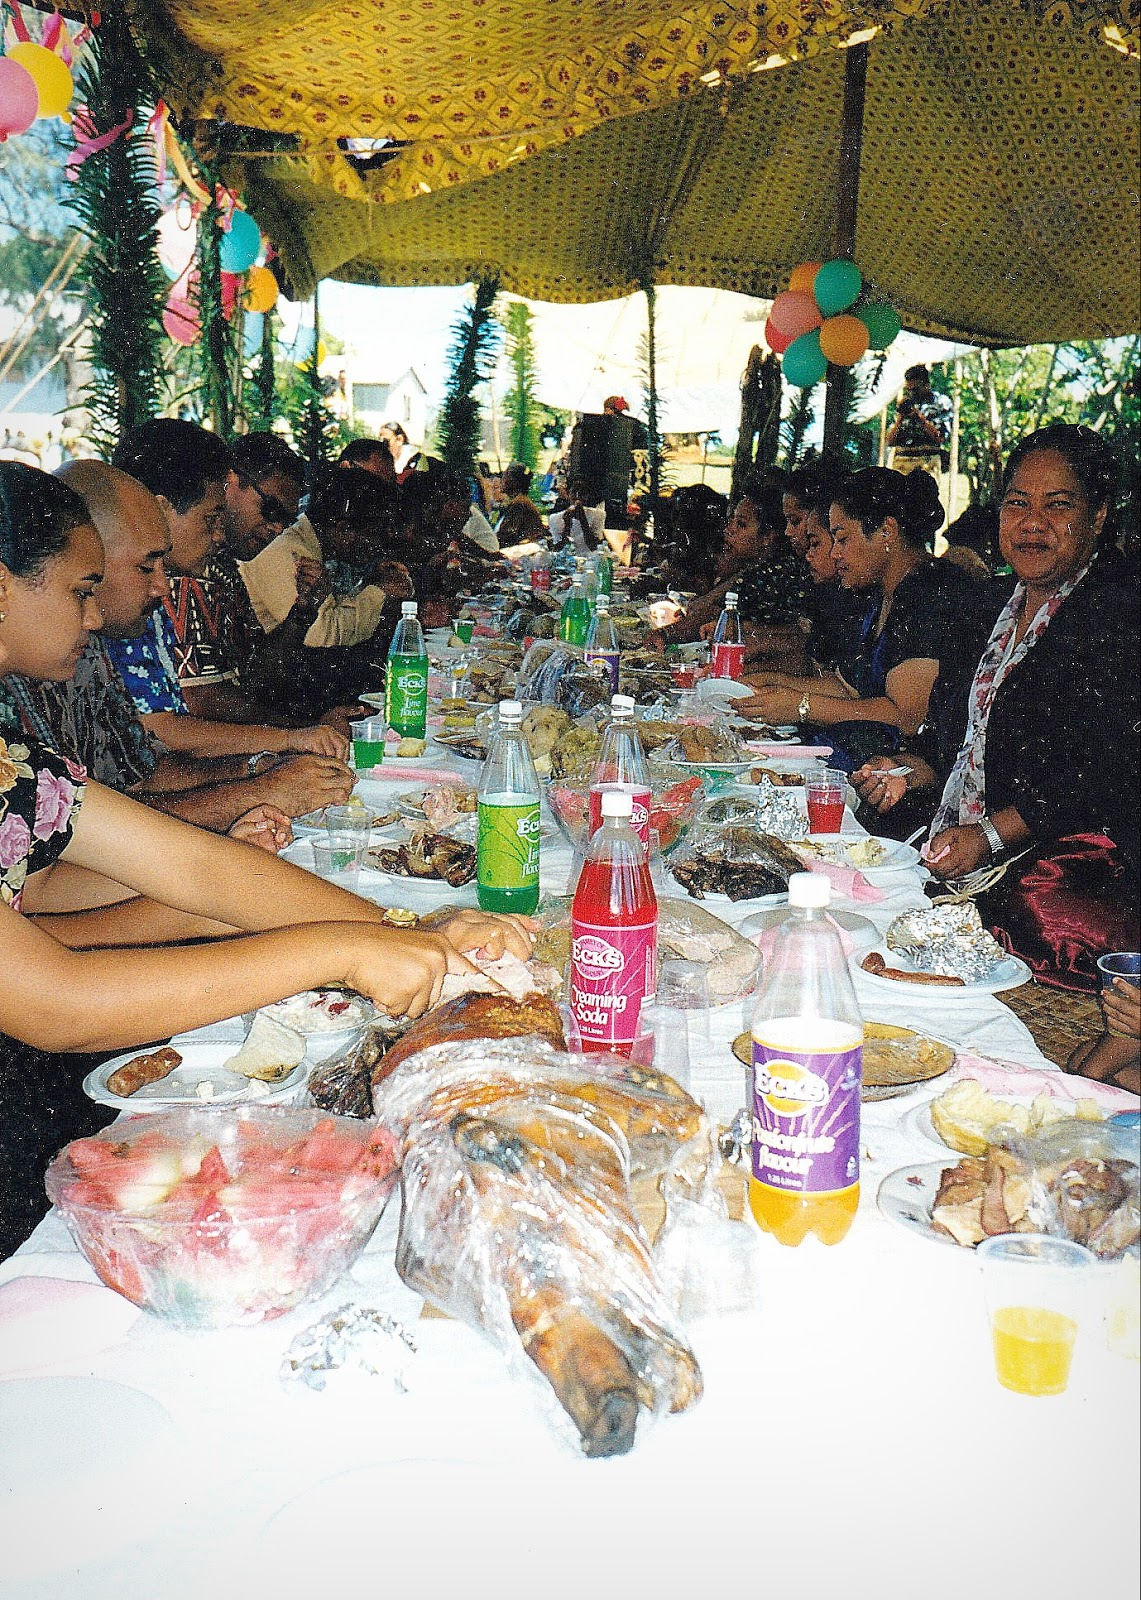 Tongan feast includes an array of fresh fruit, fish and meats.